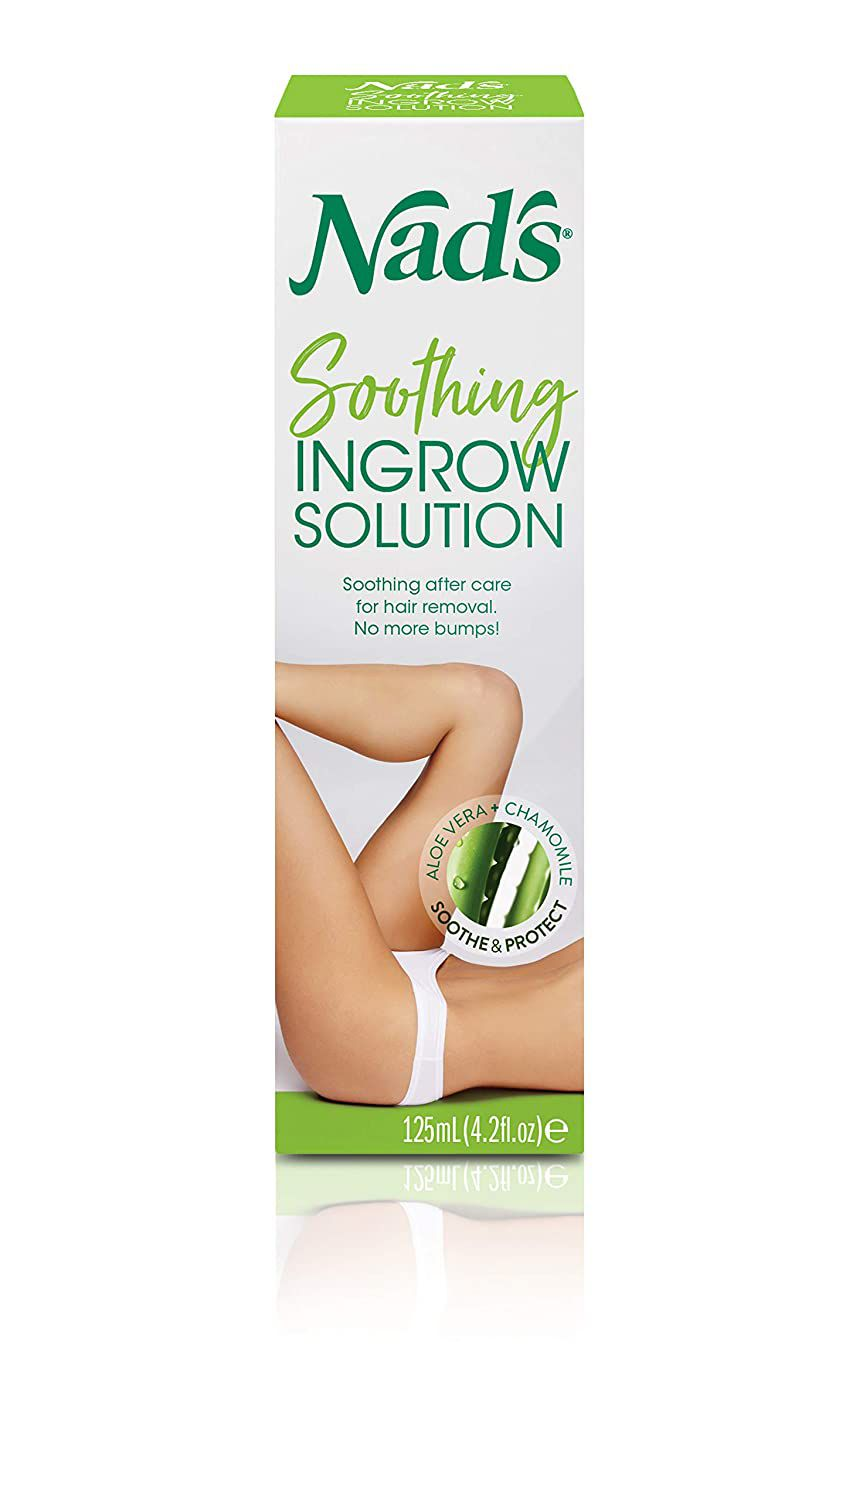 Nad's Soothing Ingrown Solution